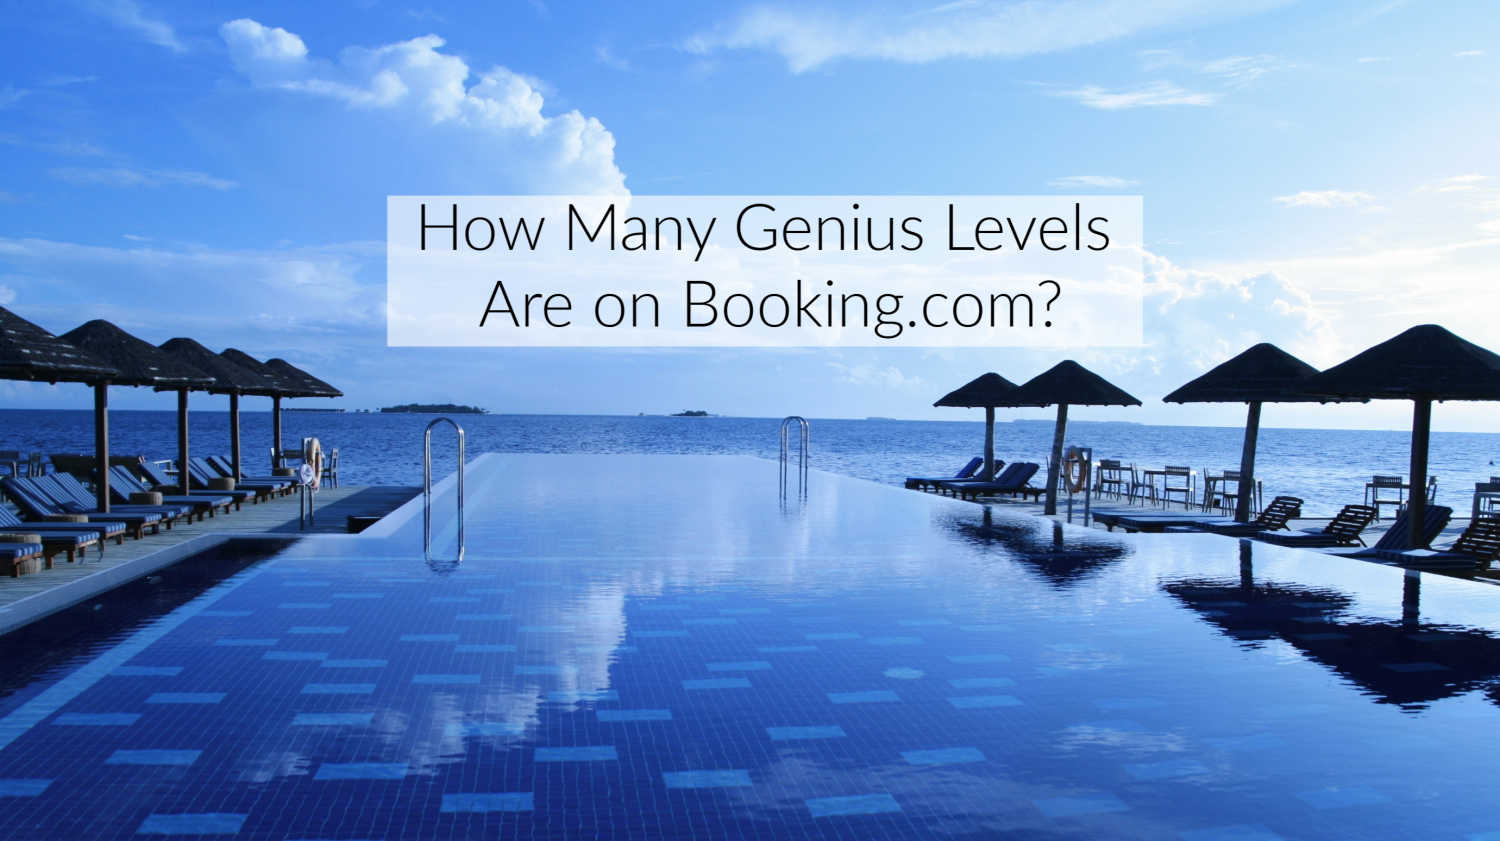 How Many Genius Levels are On Booking.com